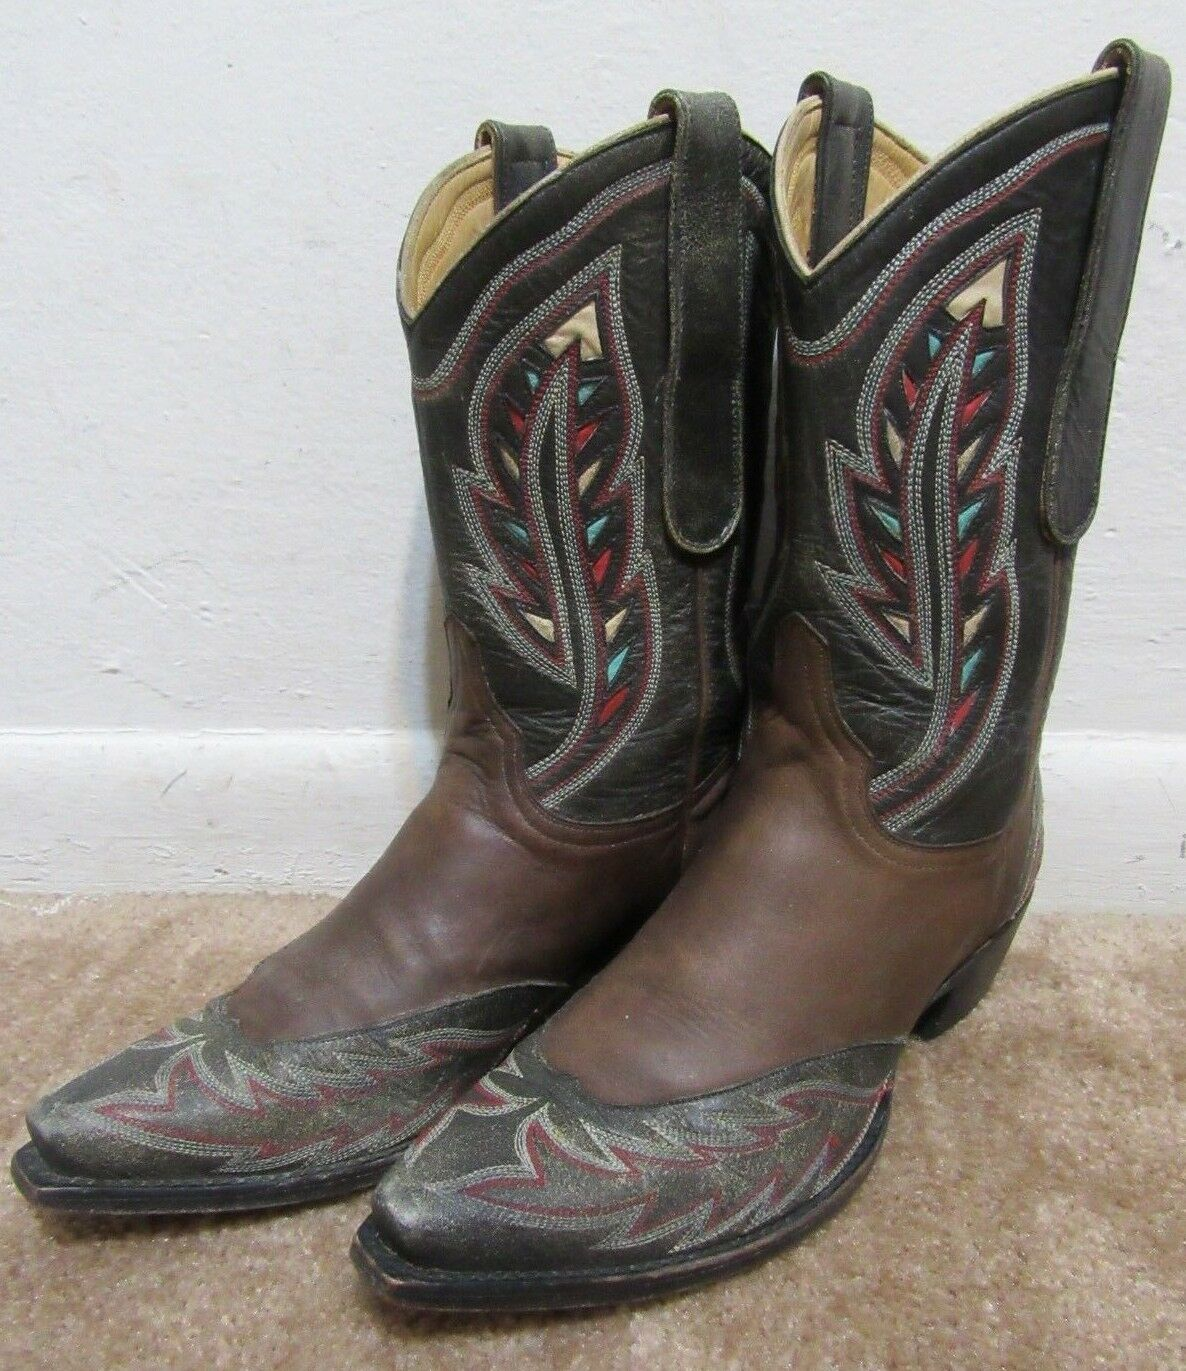 The Old Gringo Boots Leather Western Cowboy Boots 7.5 7.5 7.5 7 1 2 Brown Black 638 L@@K 66f9be